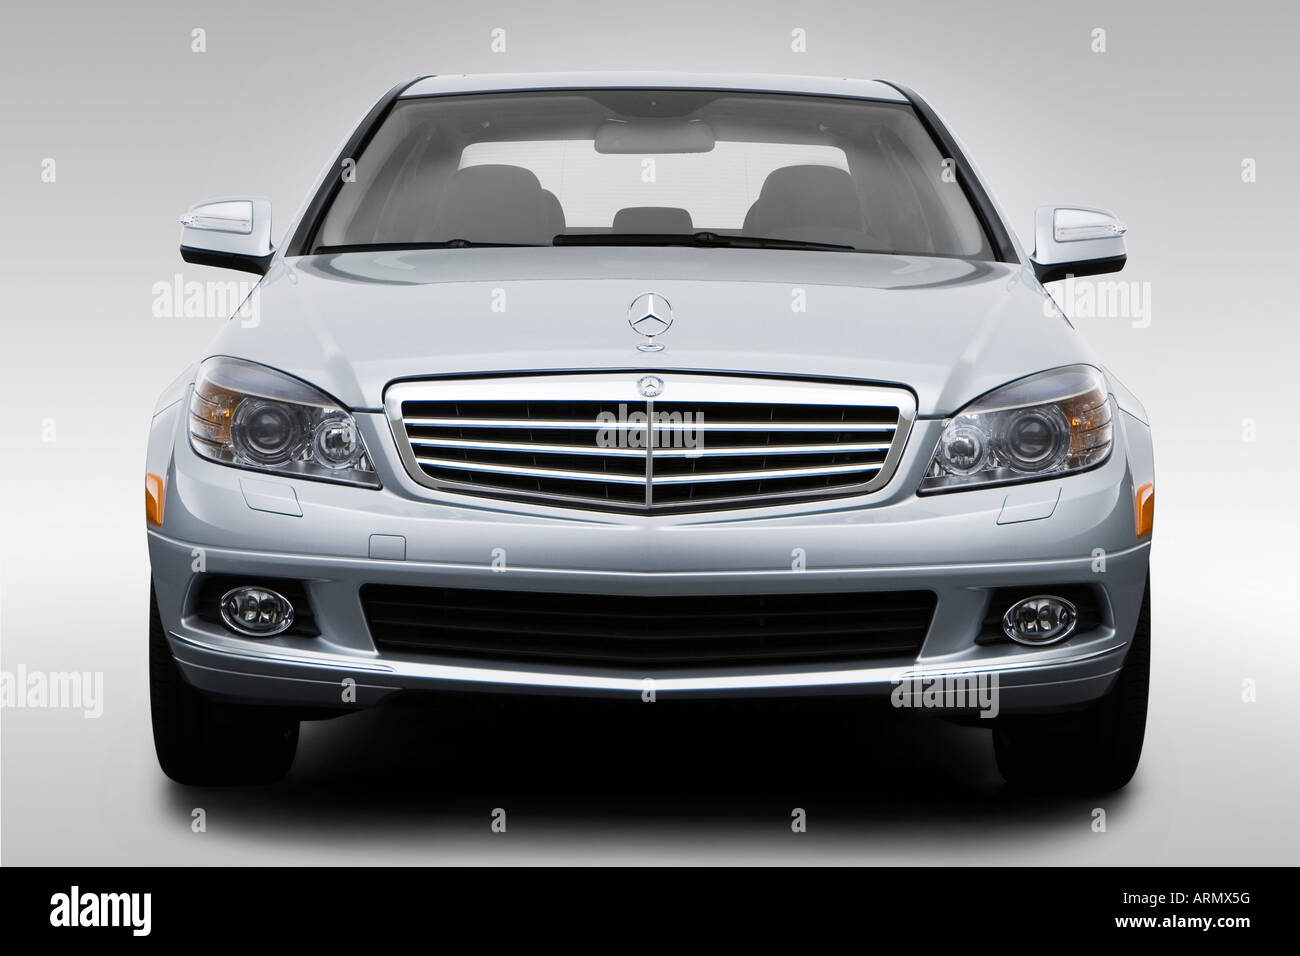 hight resolution of 2008 mercedes benz c class c300 in silver low wide front